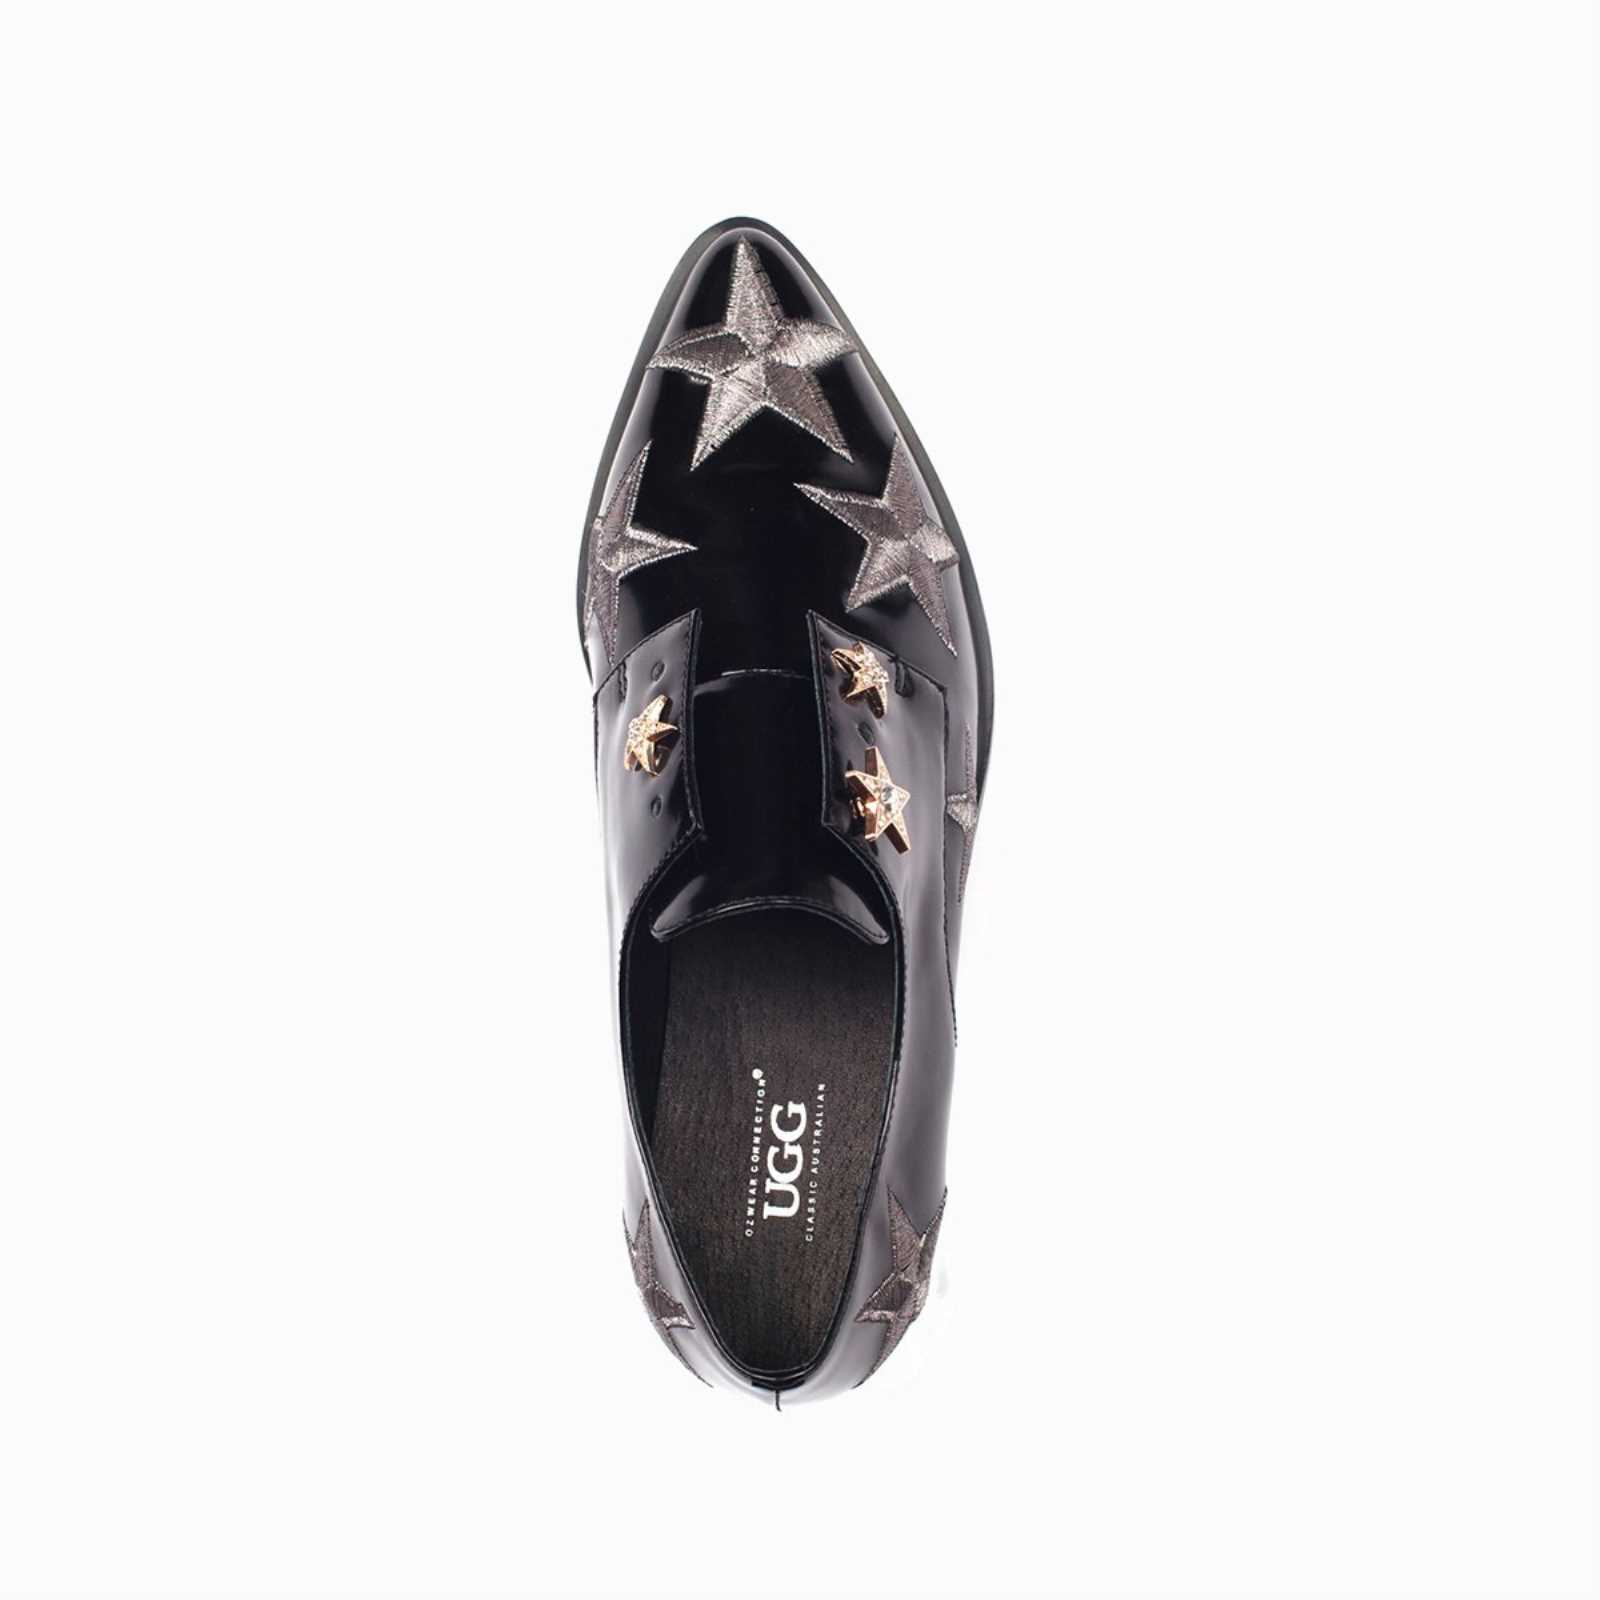 6b1a56e5e6a Details about UGG OZWEAR LADIES WILLA OXFORD STAR DETAIL GENUINE LEATHER  BLACK FLATS OB262